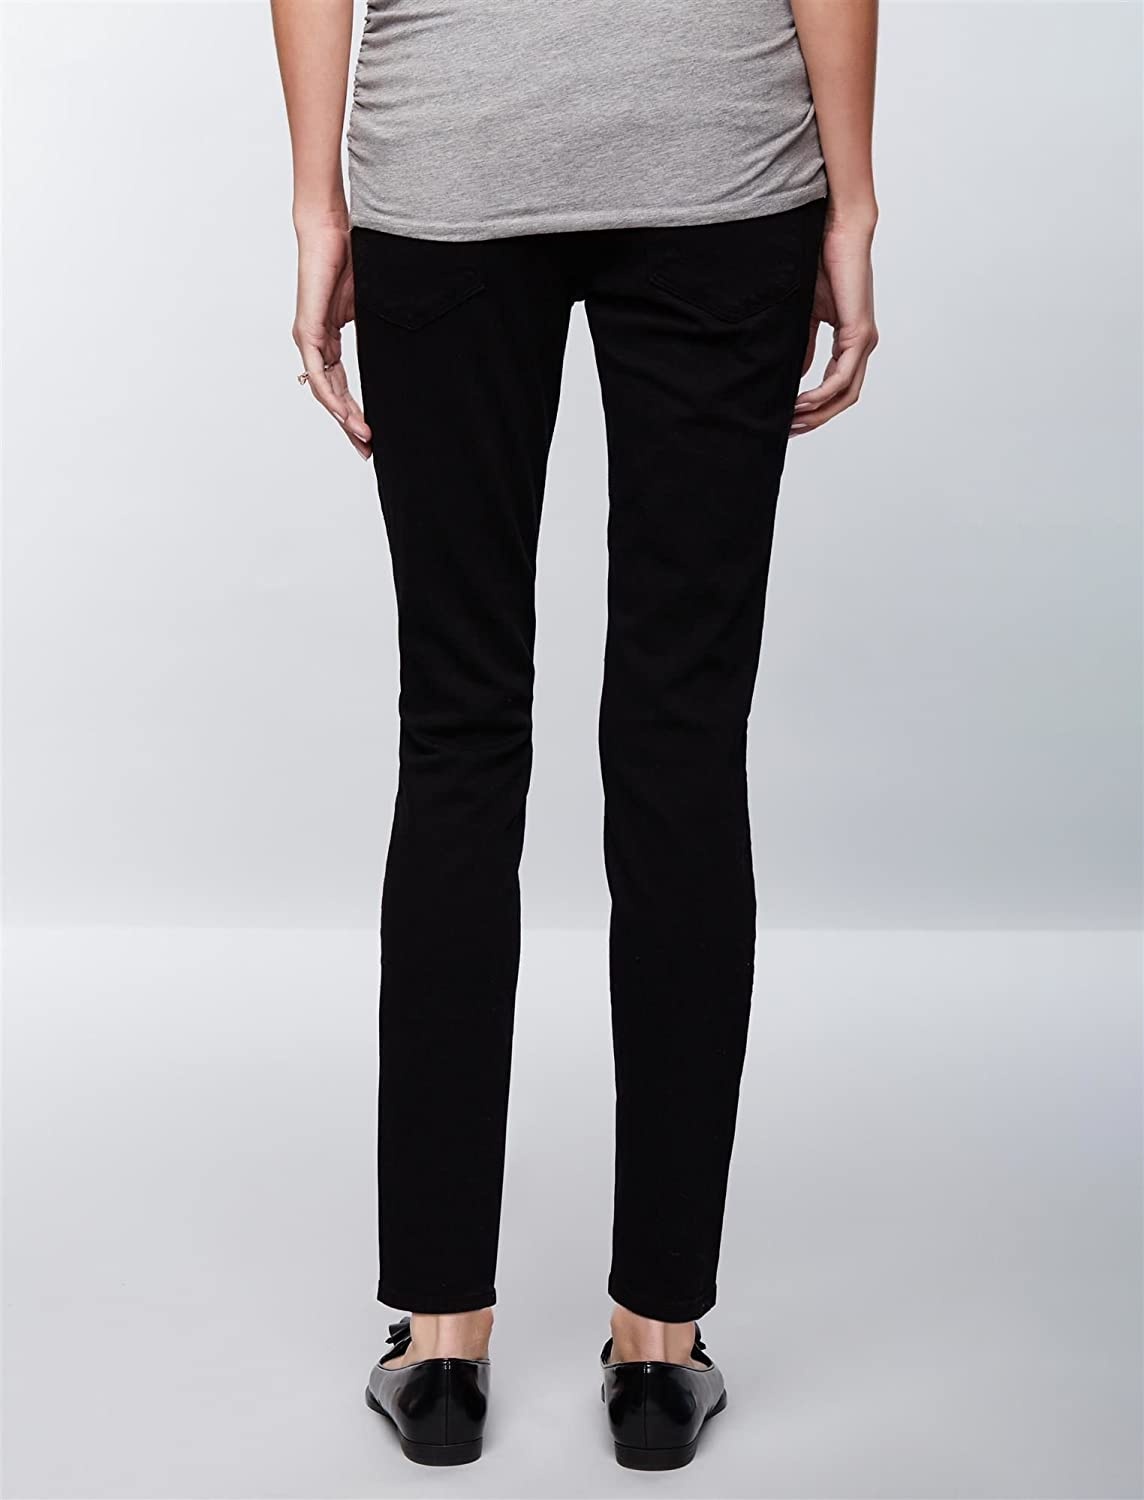 A Pea in the Pod Frame Secret Fit Belly Black Skinny Maternity ...